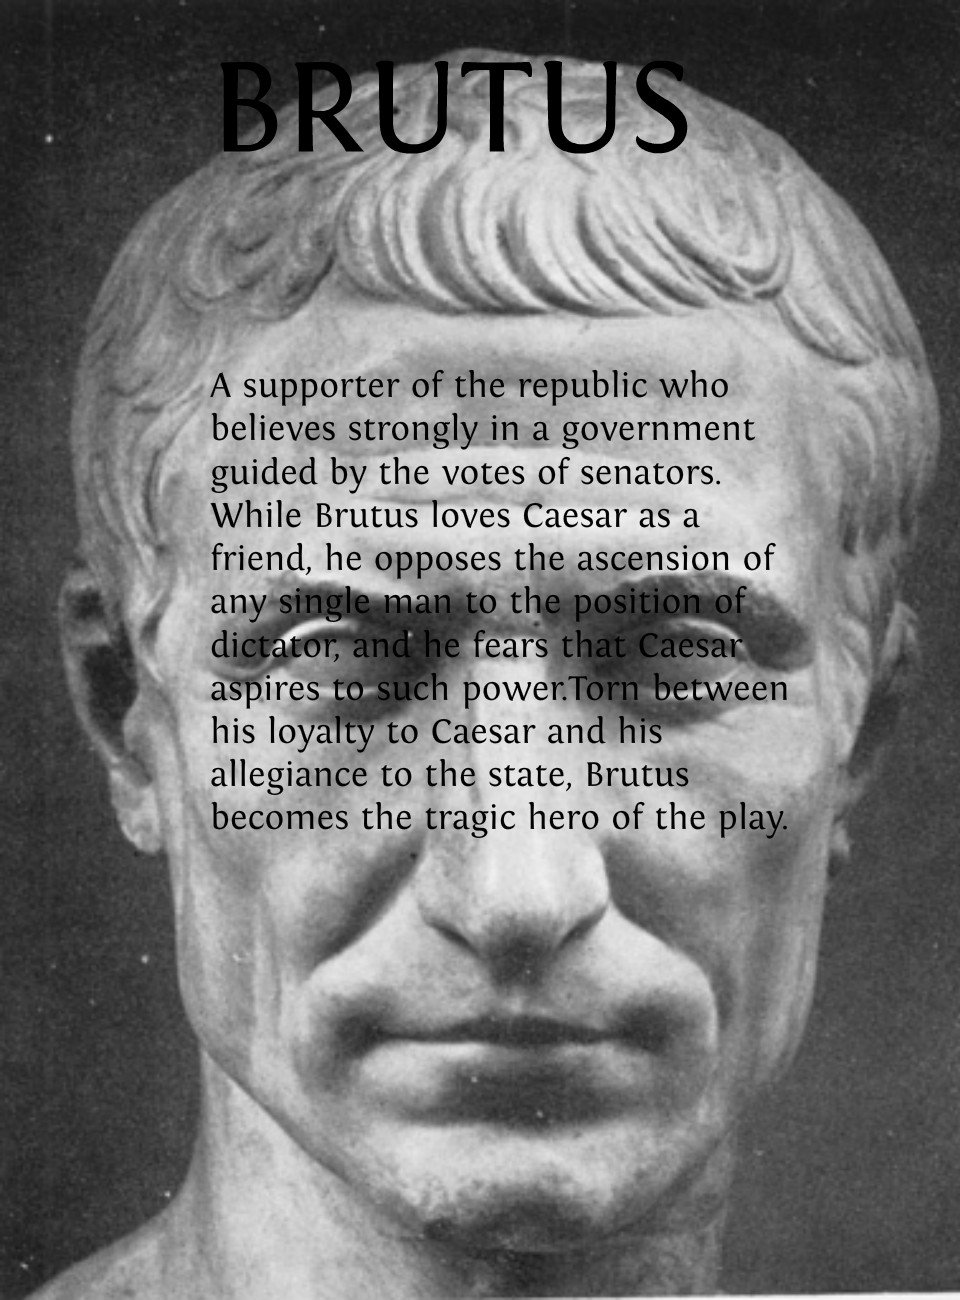 julius ceasar brutus is the tragic